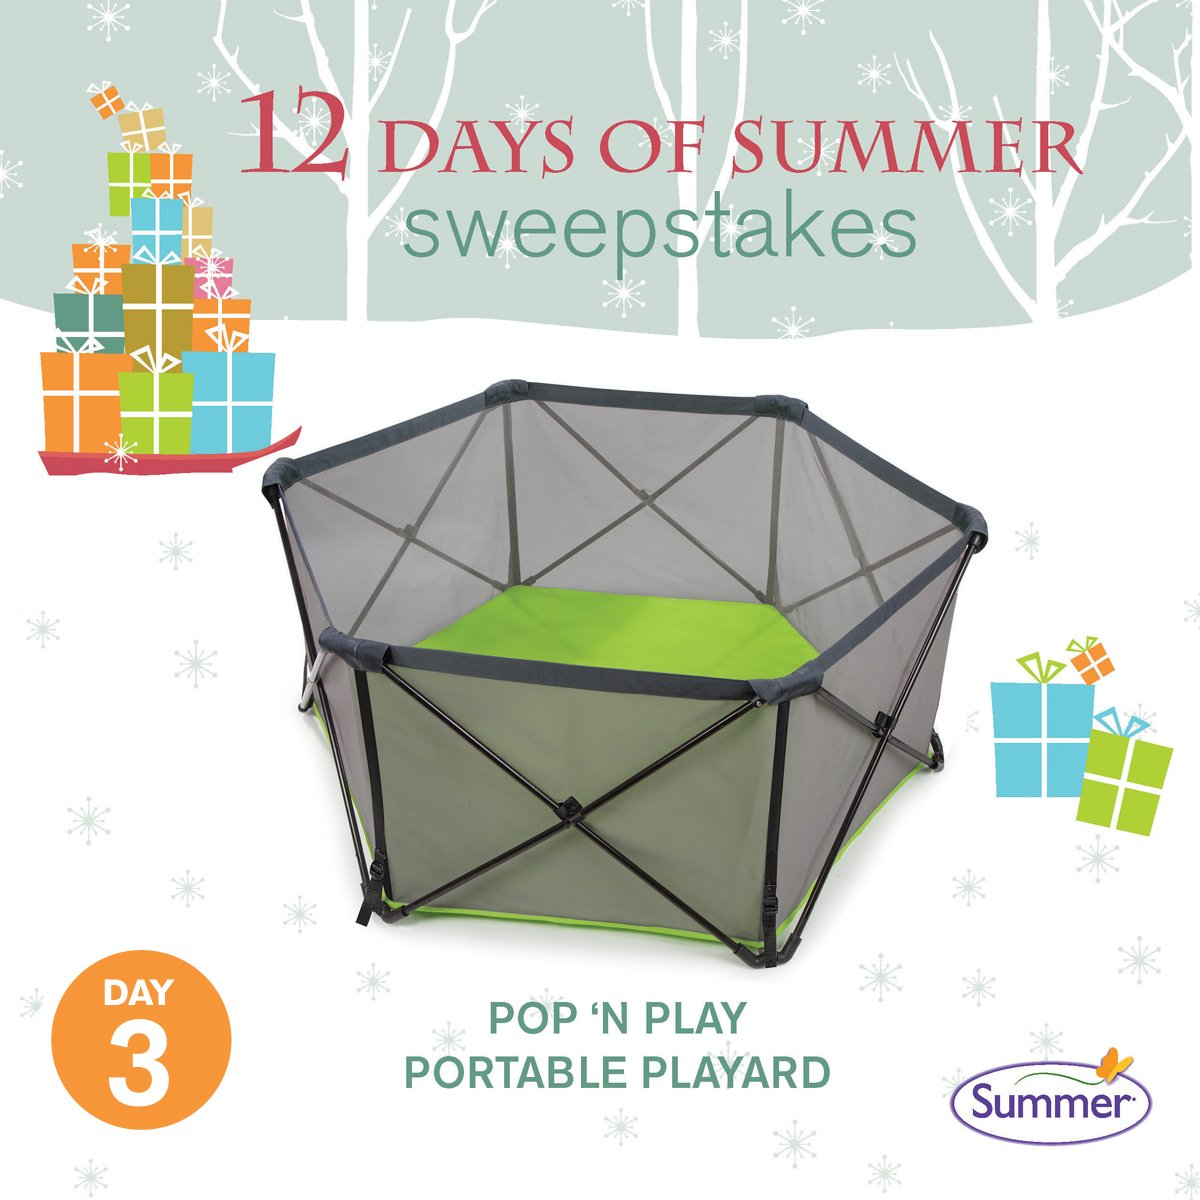 ENTER TO WIN! Today's prize: Pop 'n Play Portable Playard. Enter here: (https://t.co/CKSlsGifik) #12DaysofSummer https://t.co/cKDGAk3Zph